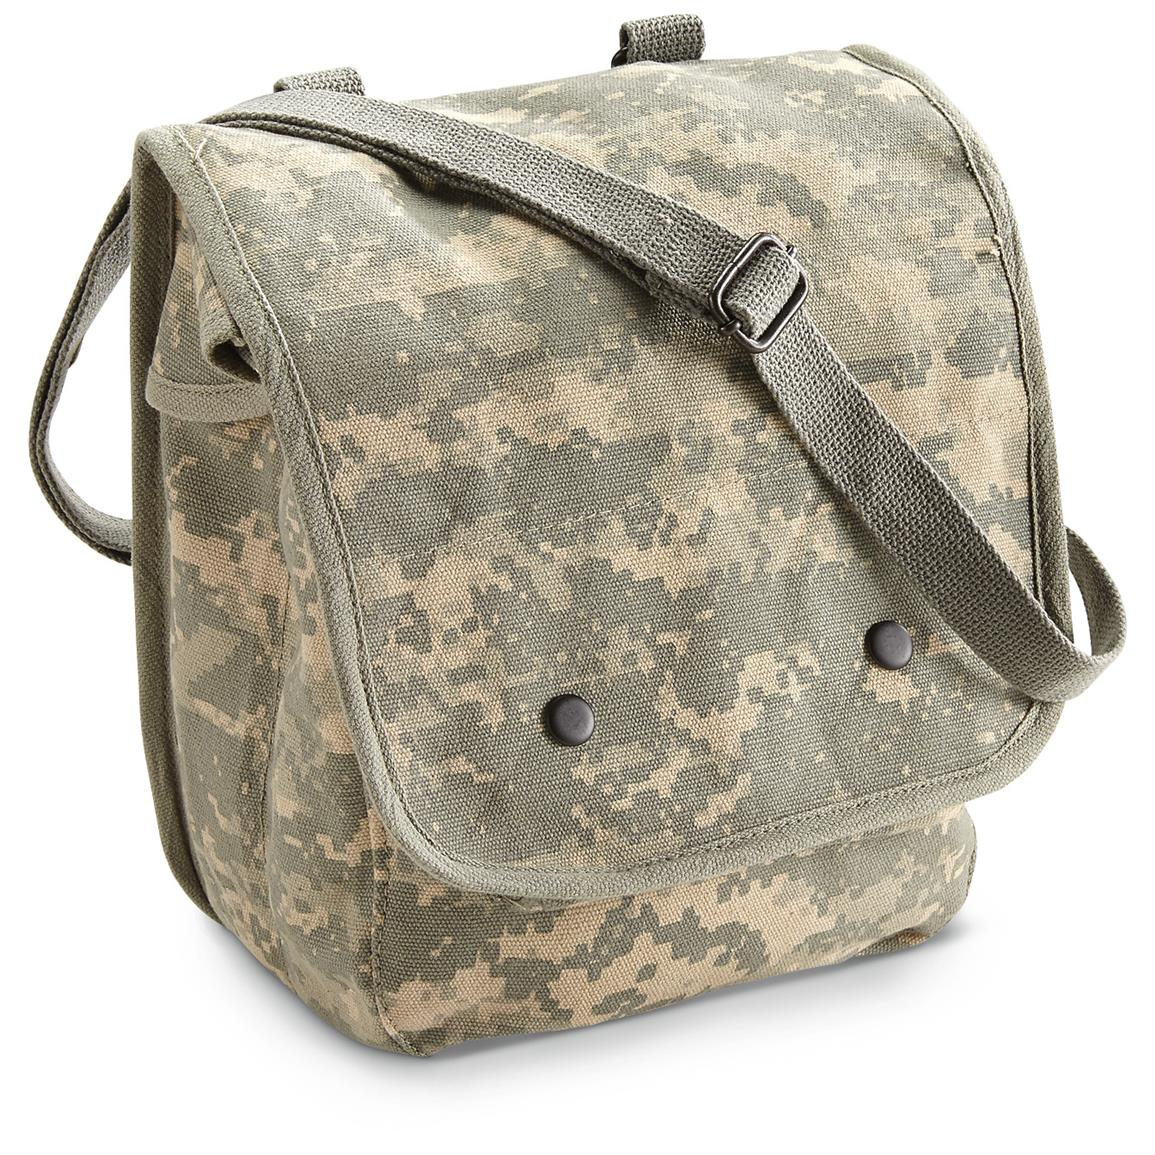 Military Style Map Bags, New, 2 Pack, Army Digital